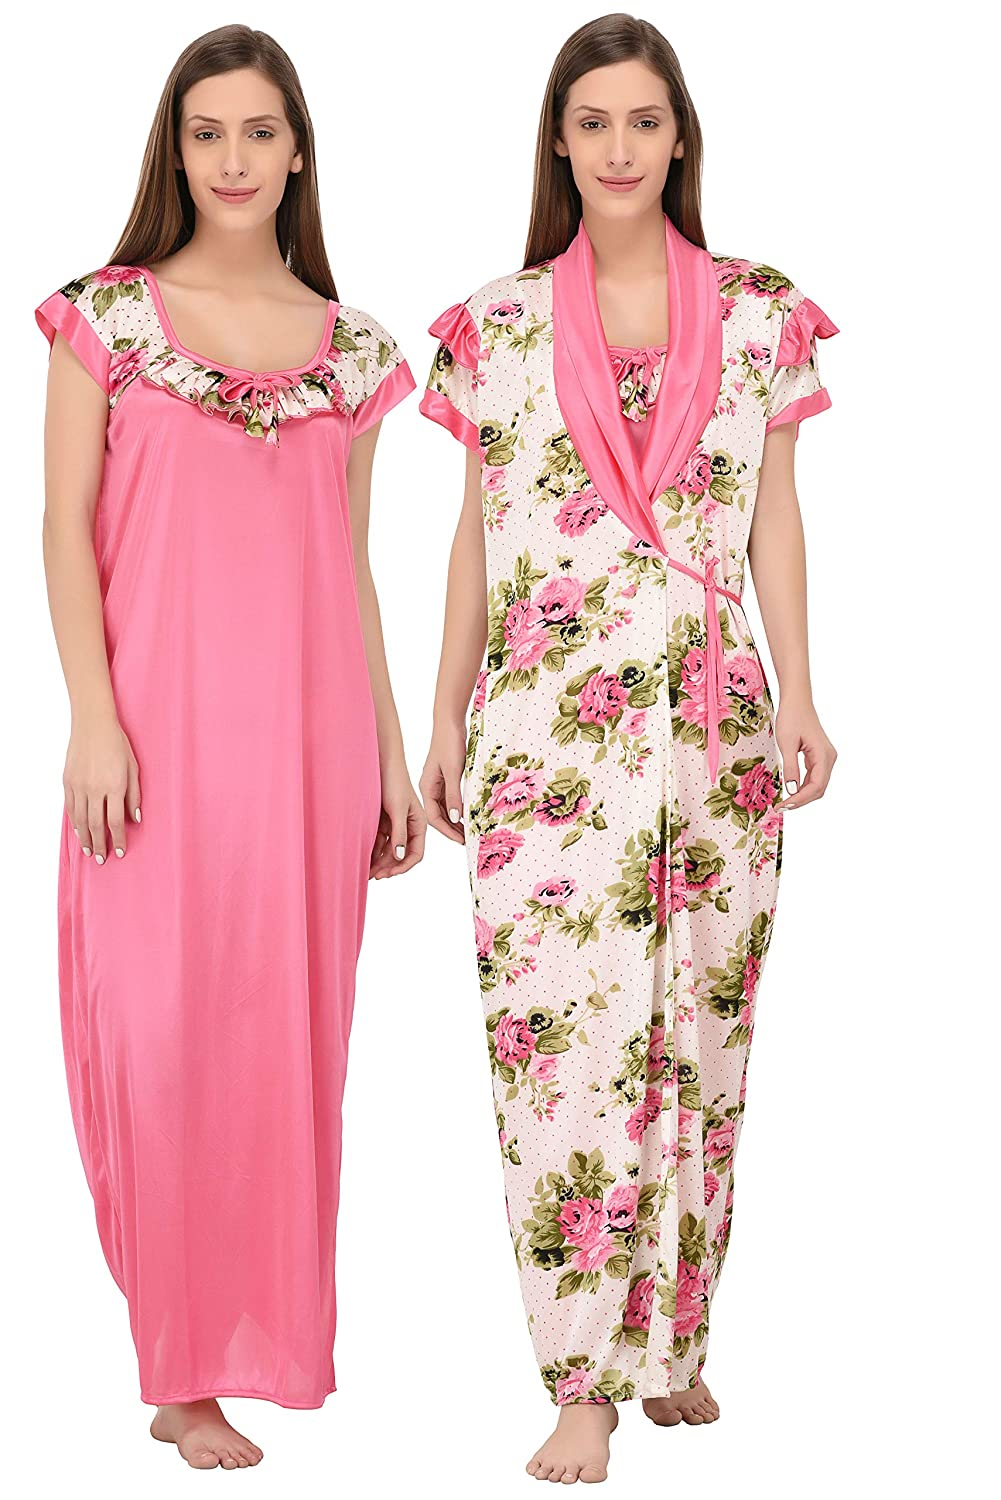 b608c2d993 Fabme Women s Satin Floral Two Piece Nighty - Robe and Nighty (Pink)   Amazon.in  Clothing   Accessories